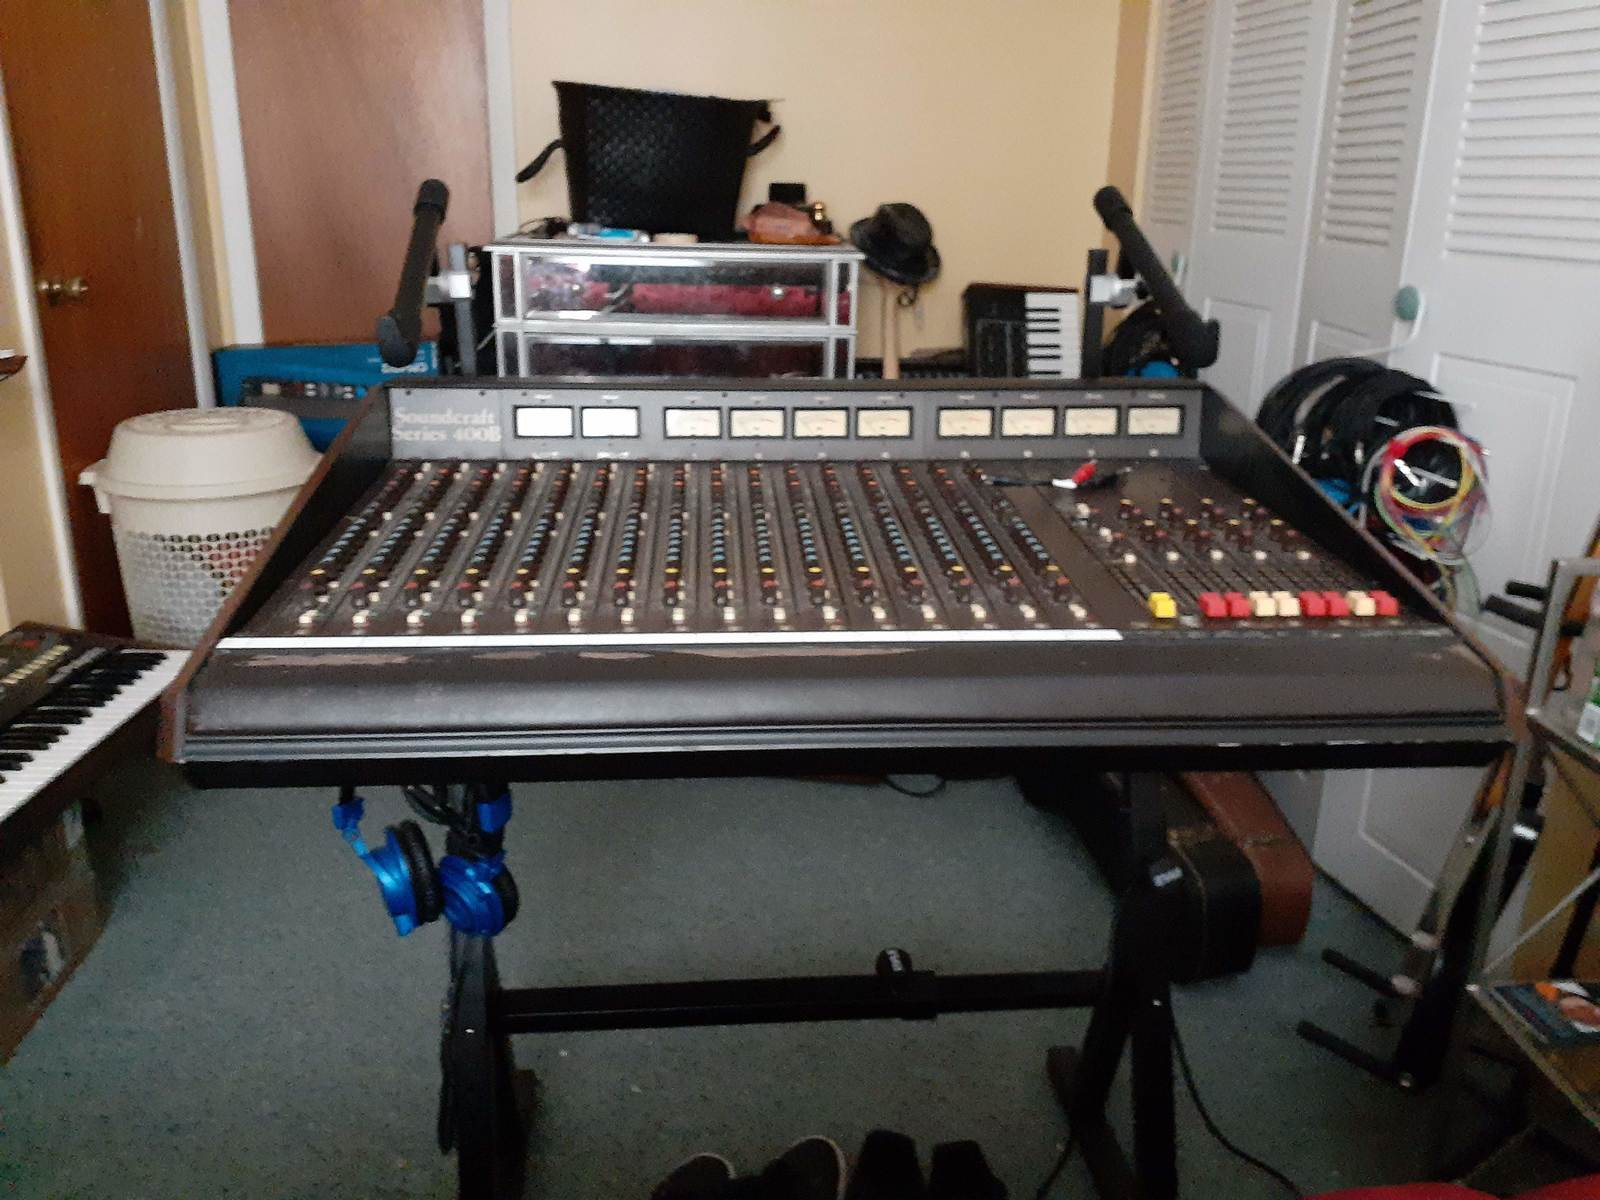 jimmarchi1's music gear photo containing Soundcraft 400B 16 channel frame